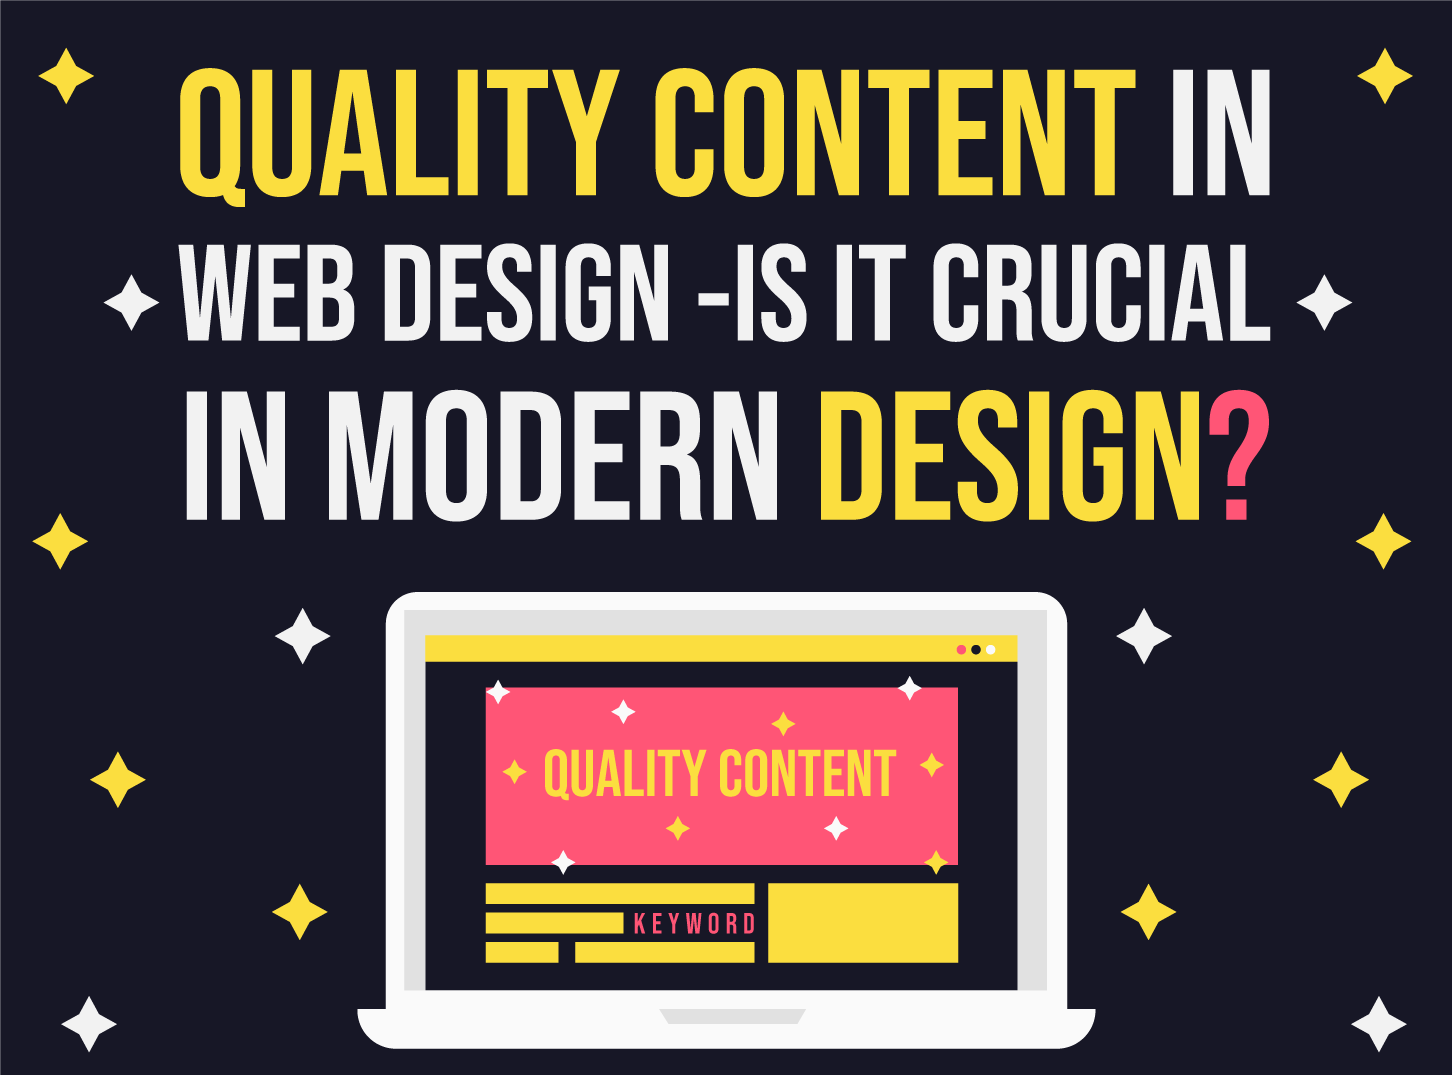 Quality content in web design is crucial for modern design and Inkyy Design Studio will help you with it